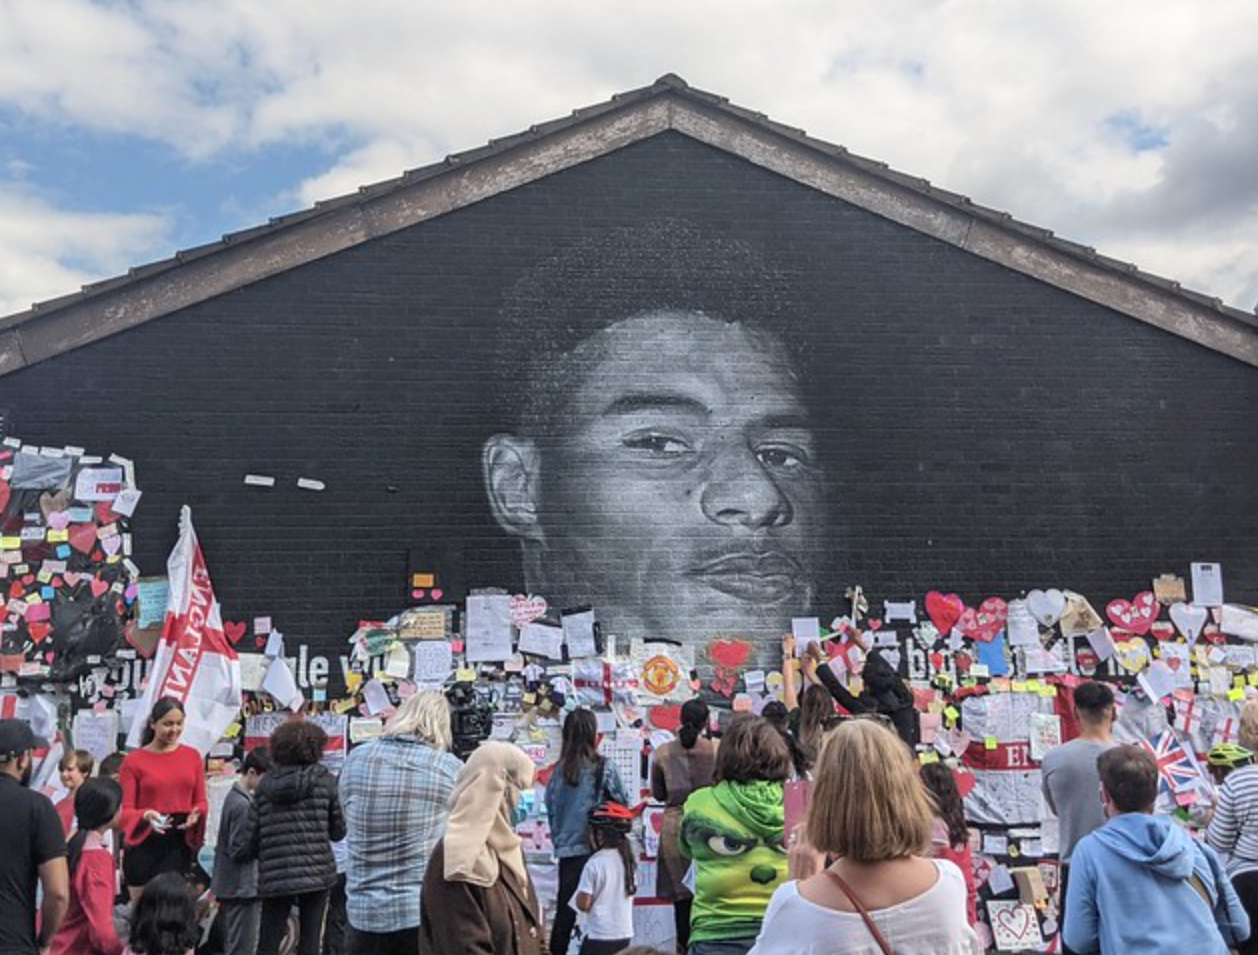 Did you know you can now see the messages on the Marcus Rashford mural up close on Google Street View?, The Manc